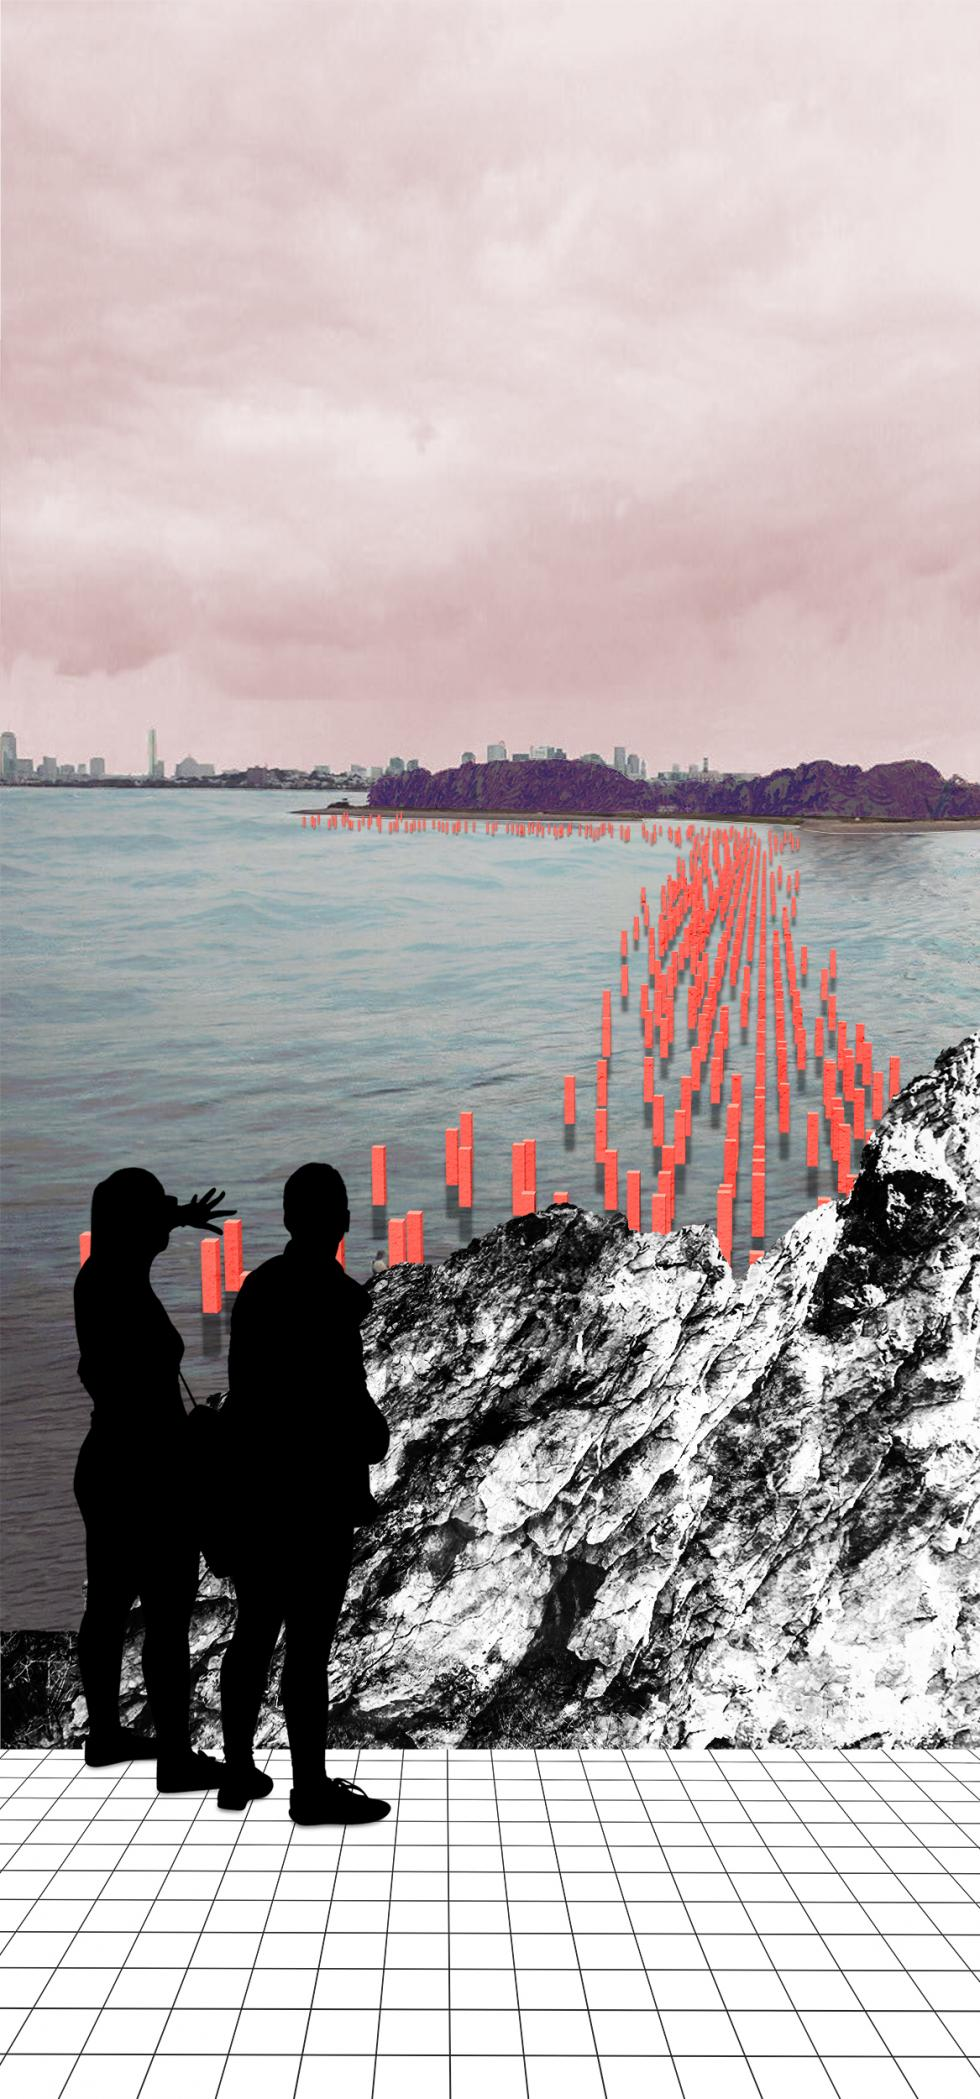 graphic rendering on sandbar with red pylon structures